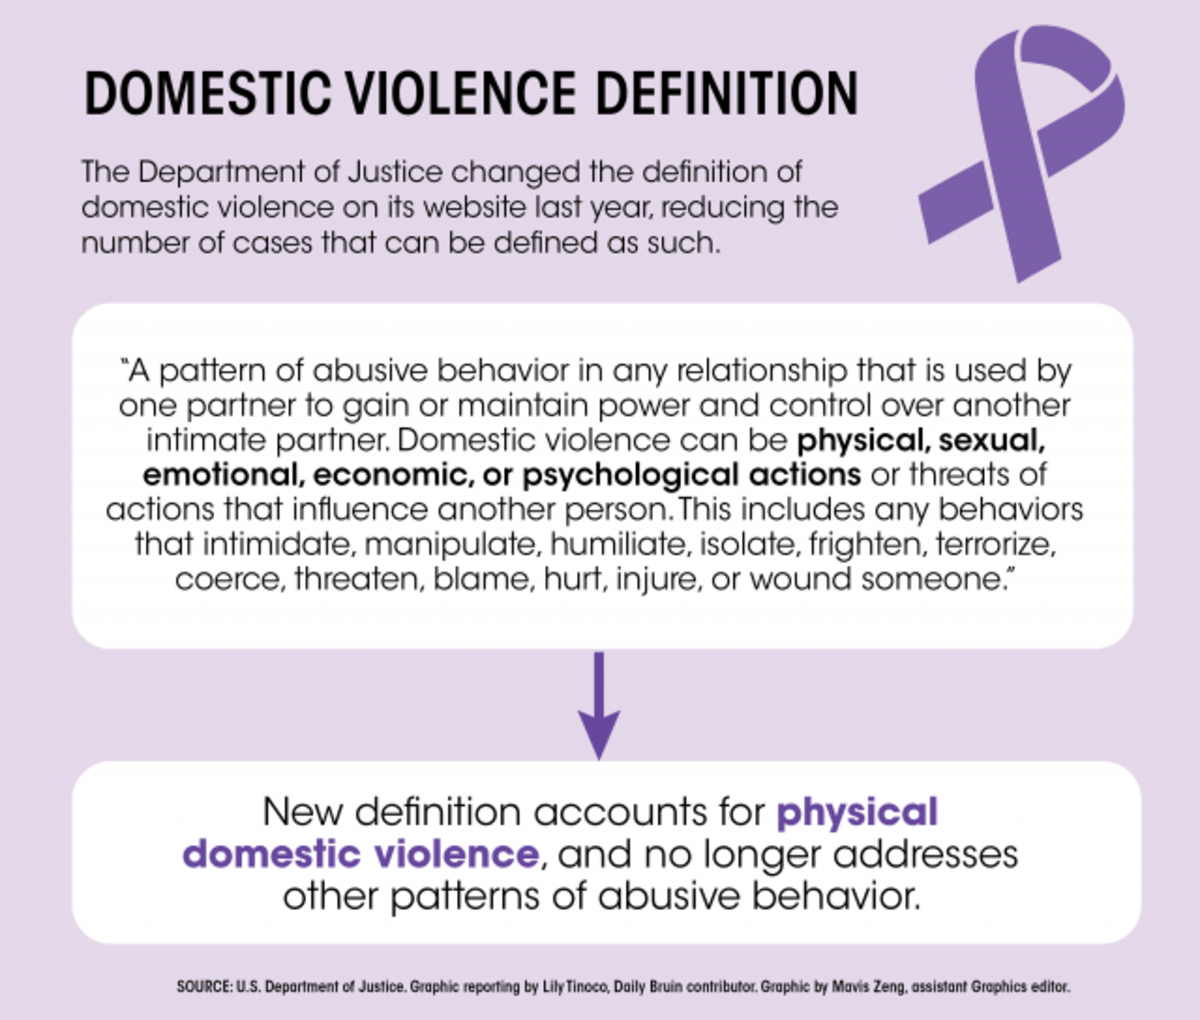 The Violence Against Women Act Should Be Reauthorized